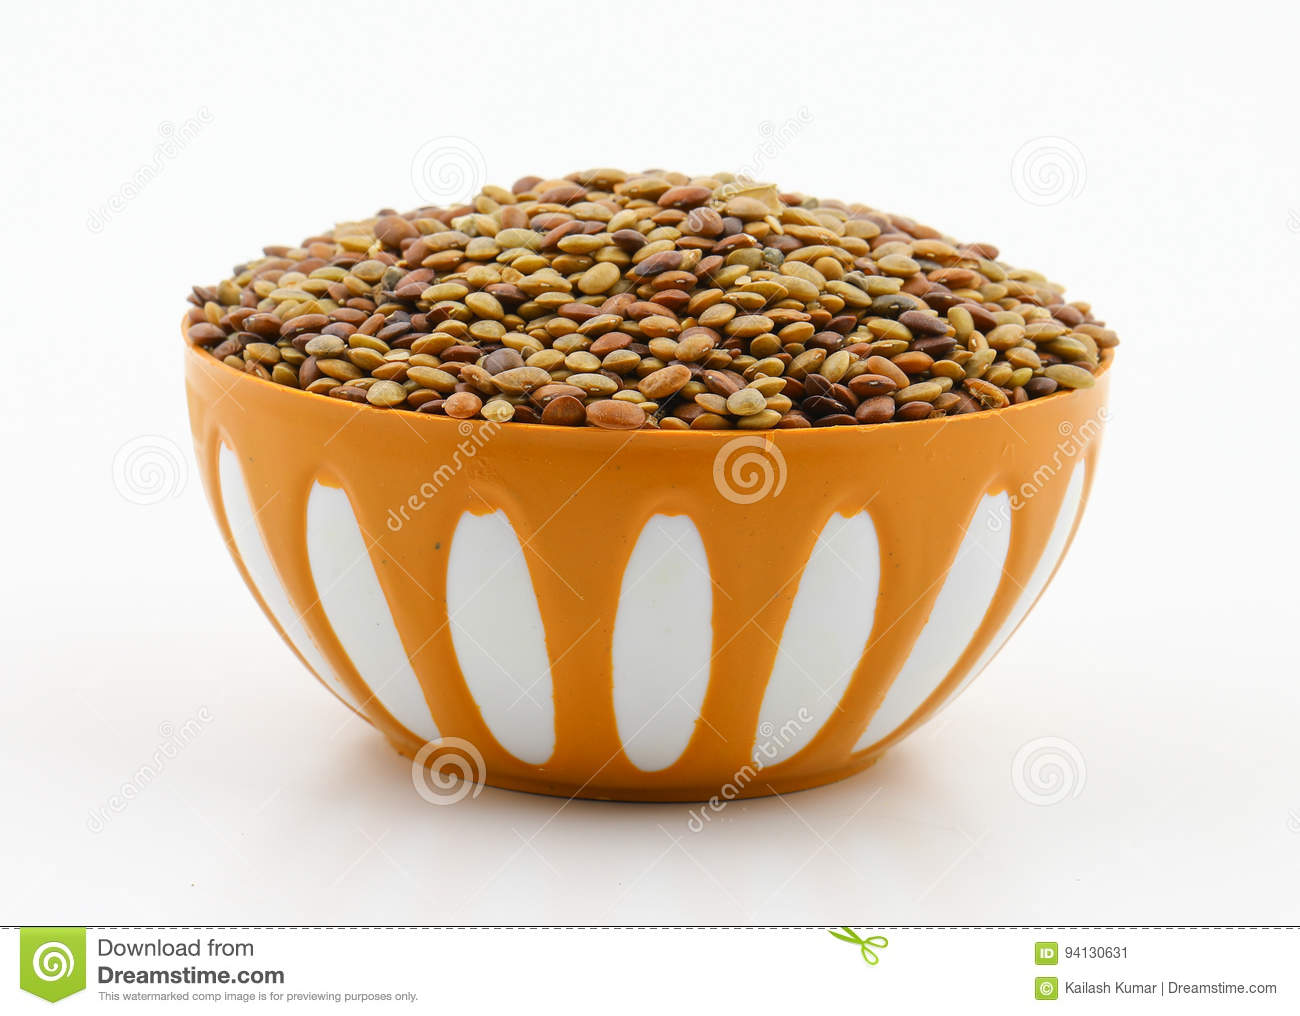 Karat seeds stock image  Image of organic, background - 94130631